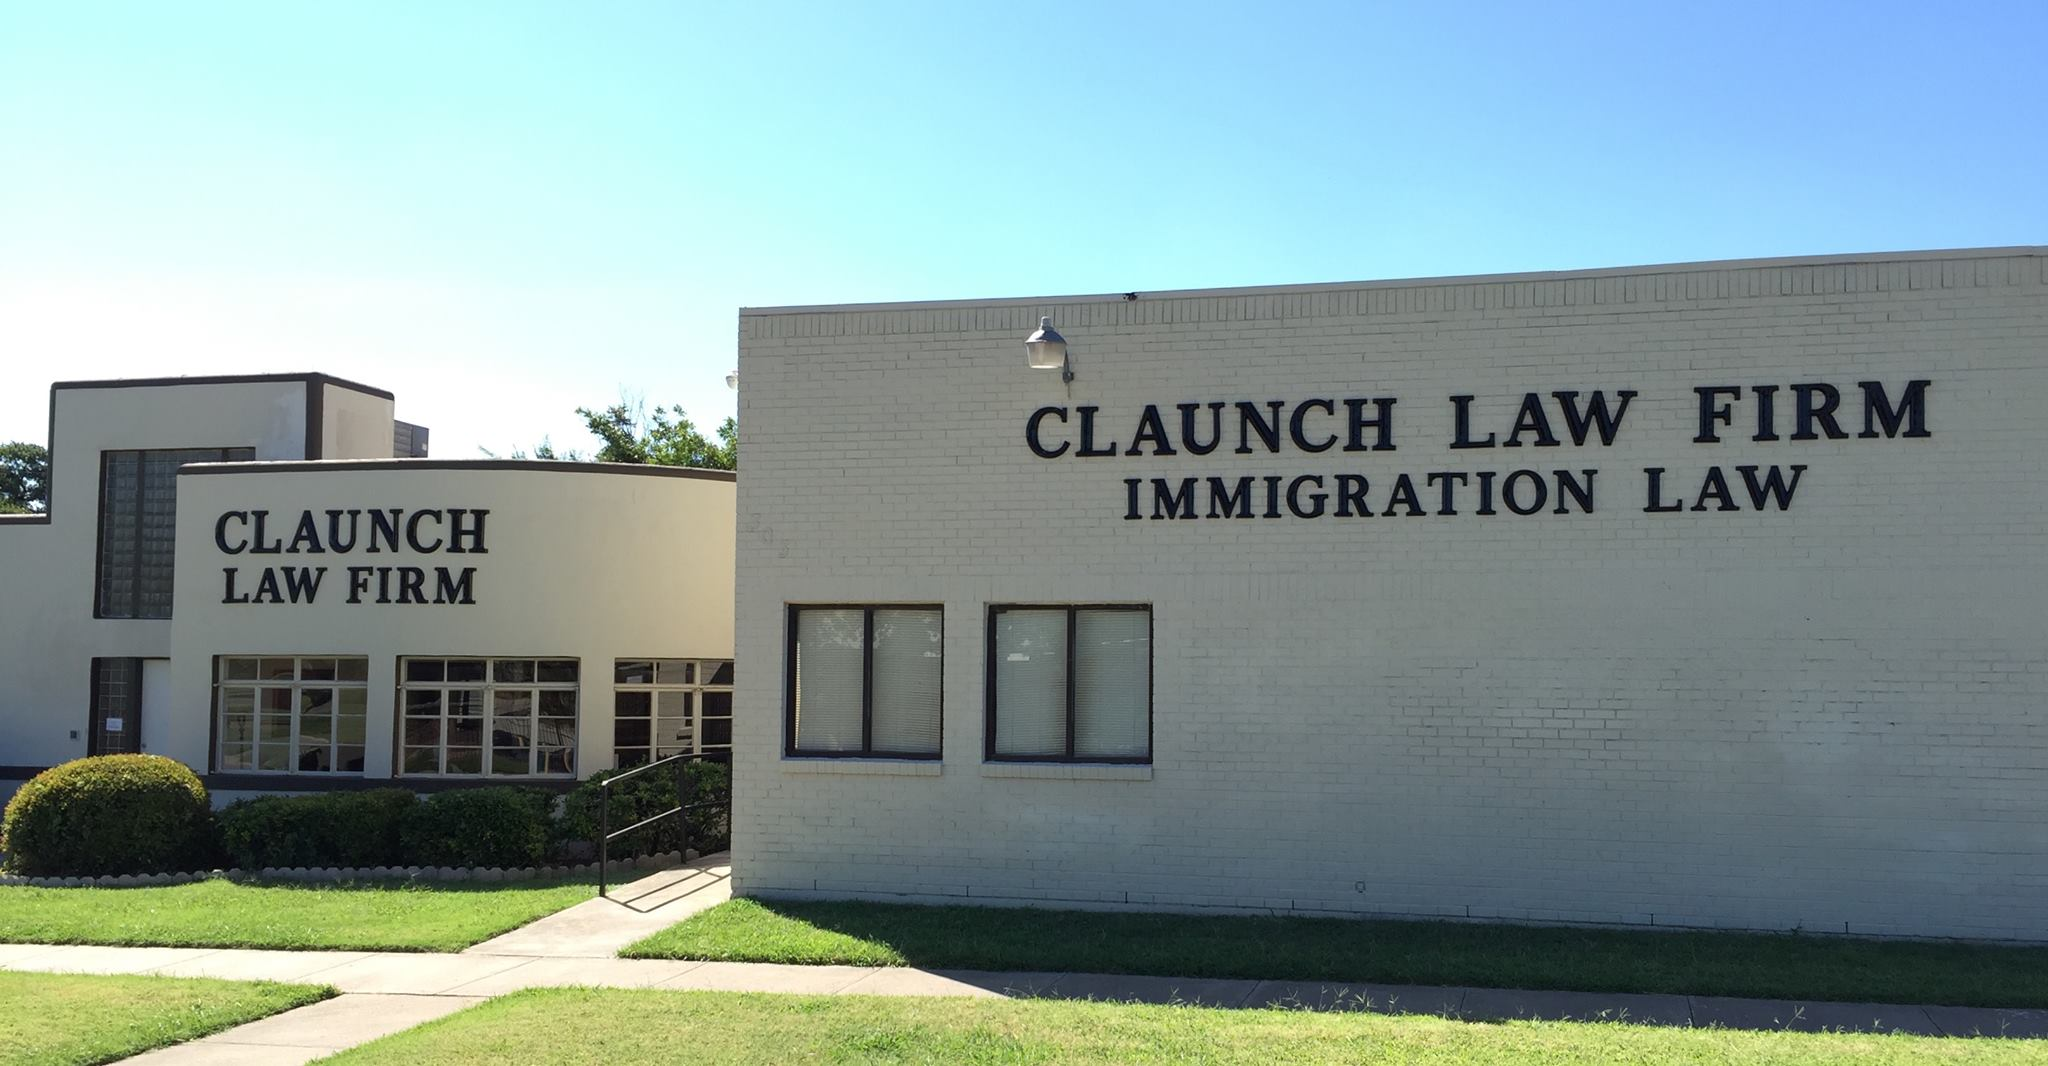 Claunch Law Firm